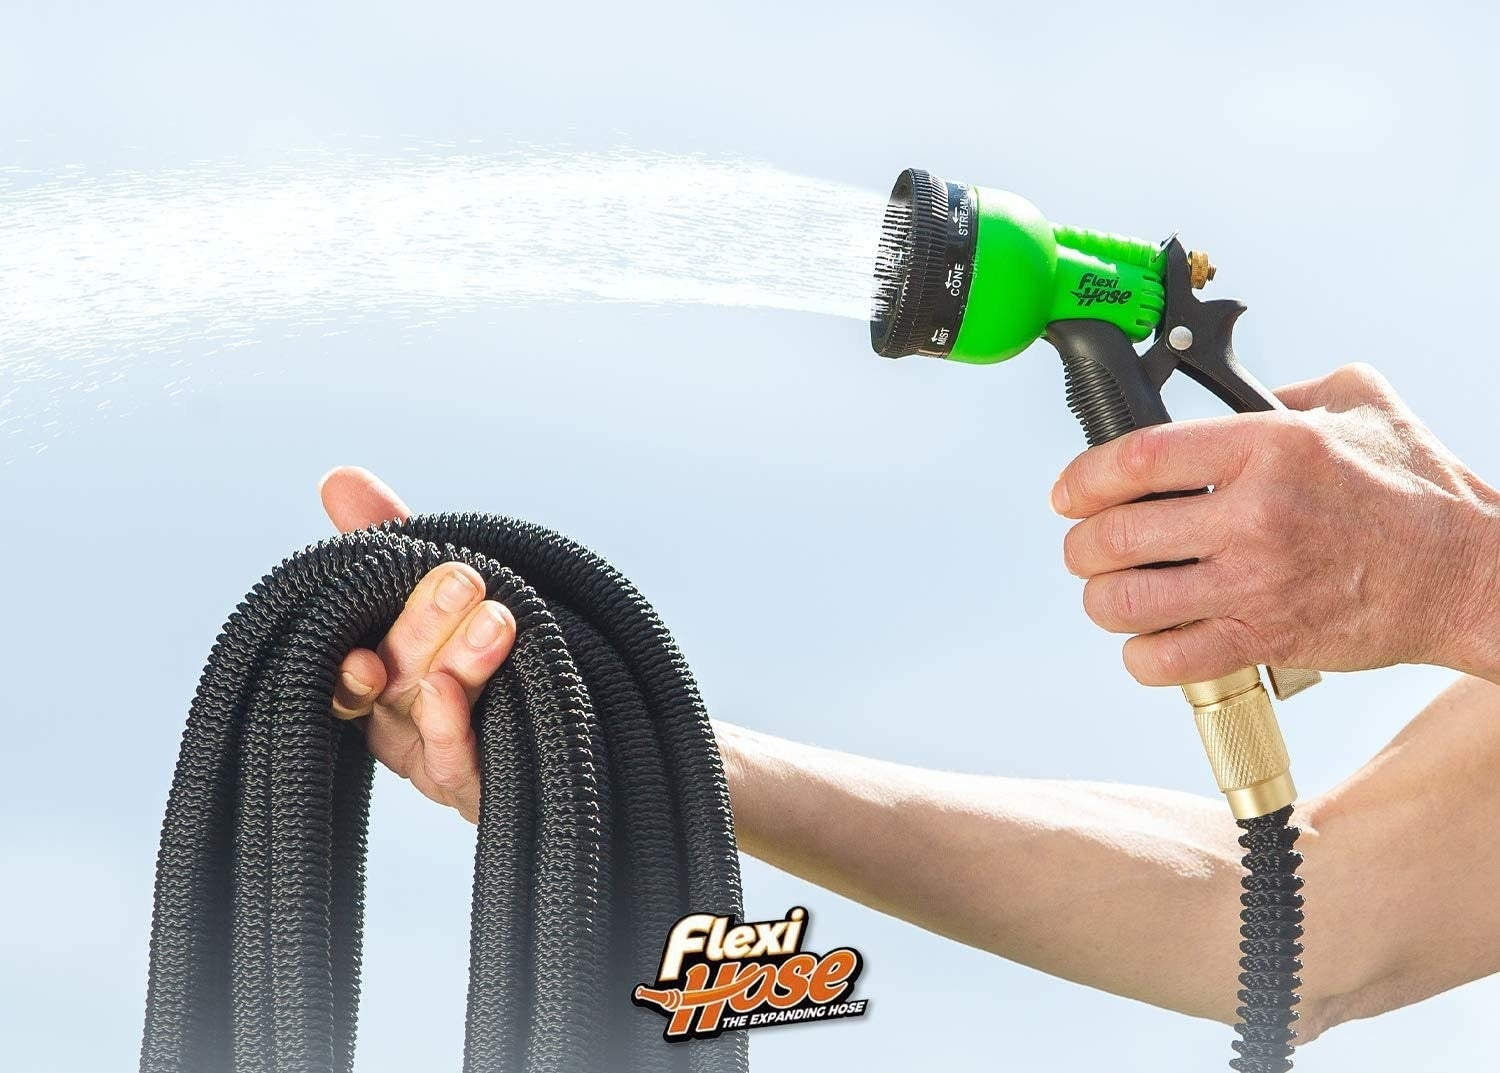 hand holds pile of hose with a spray nozzle